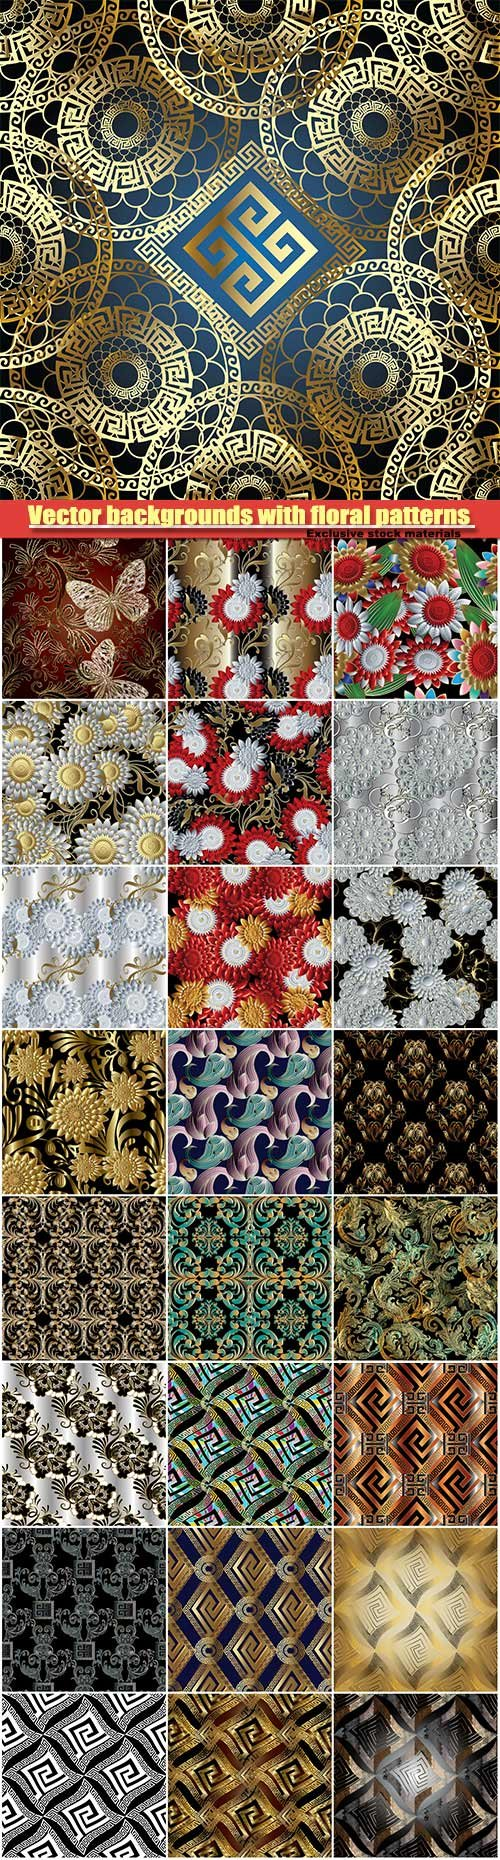 Vector backgrounds with floral and abstract patterns